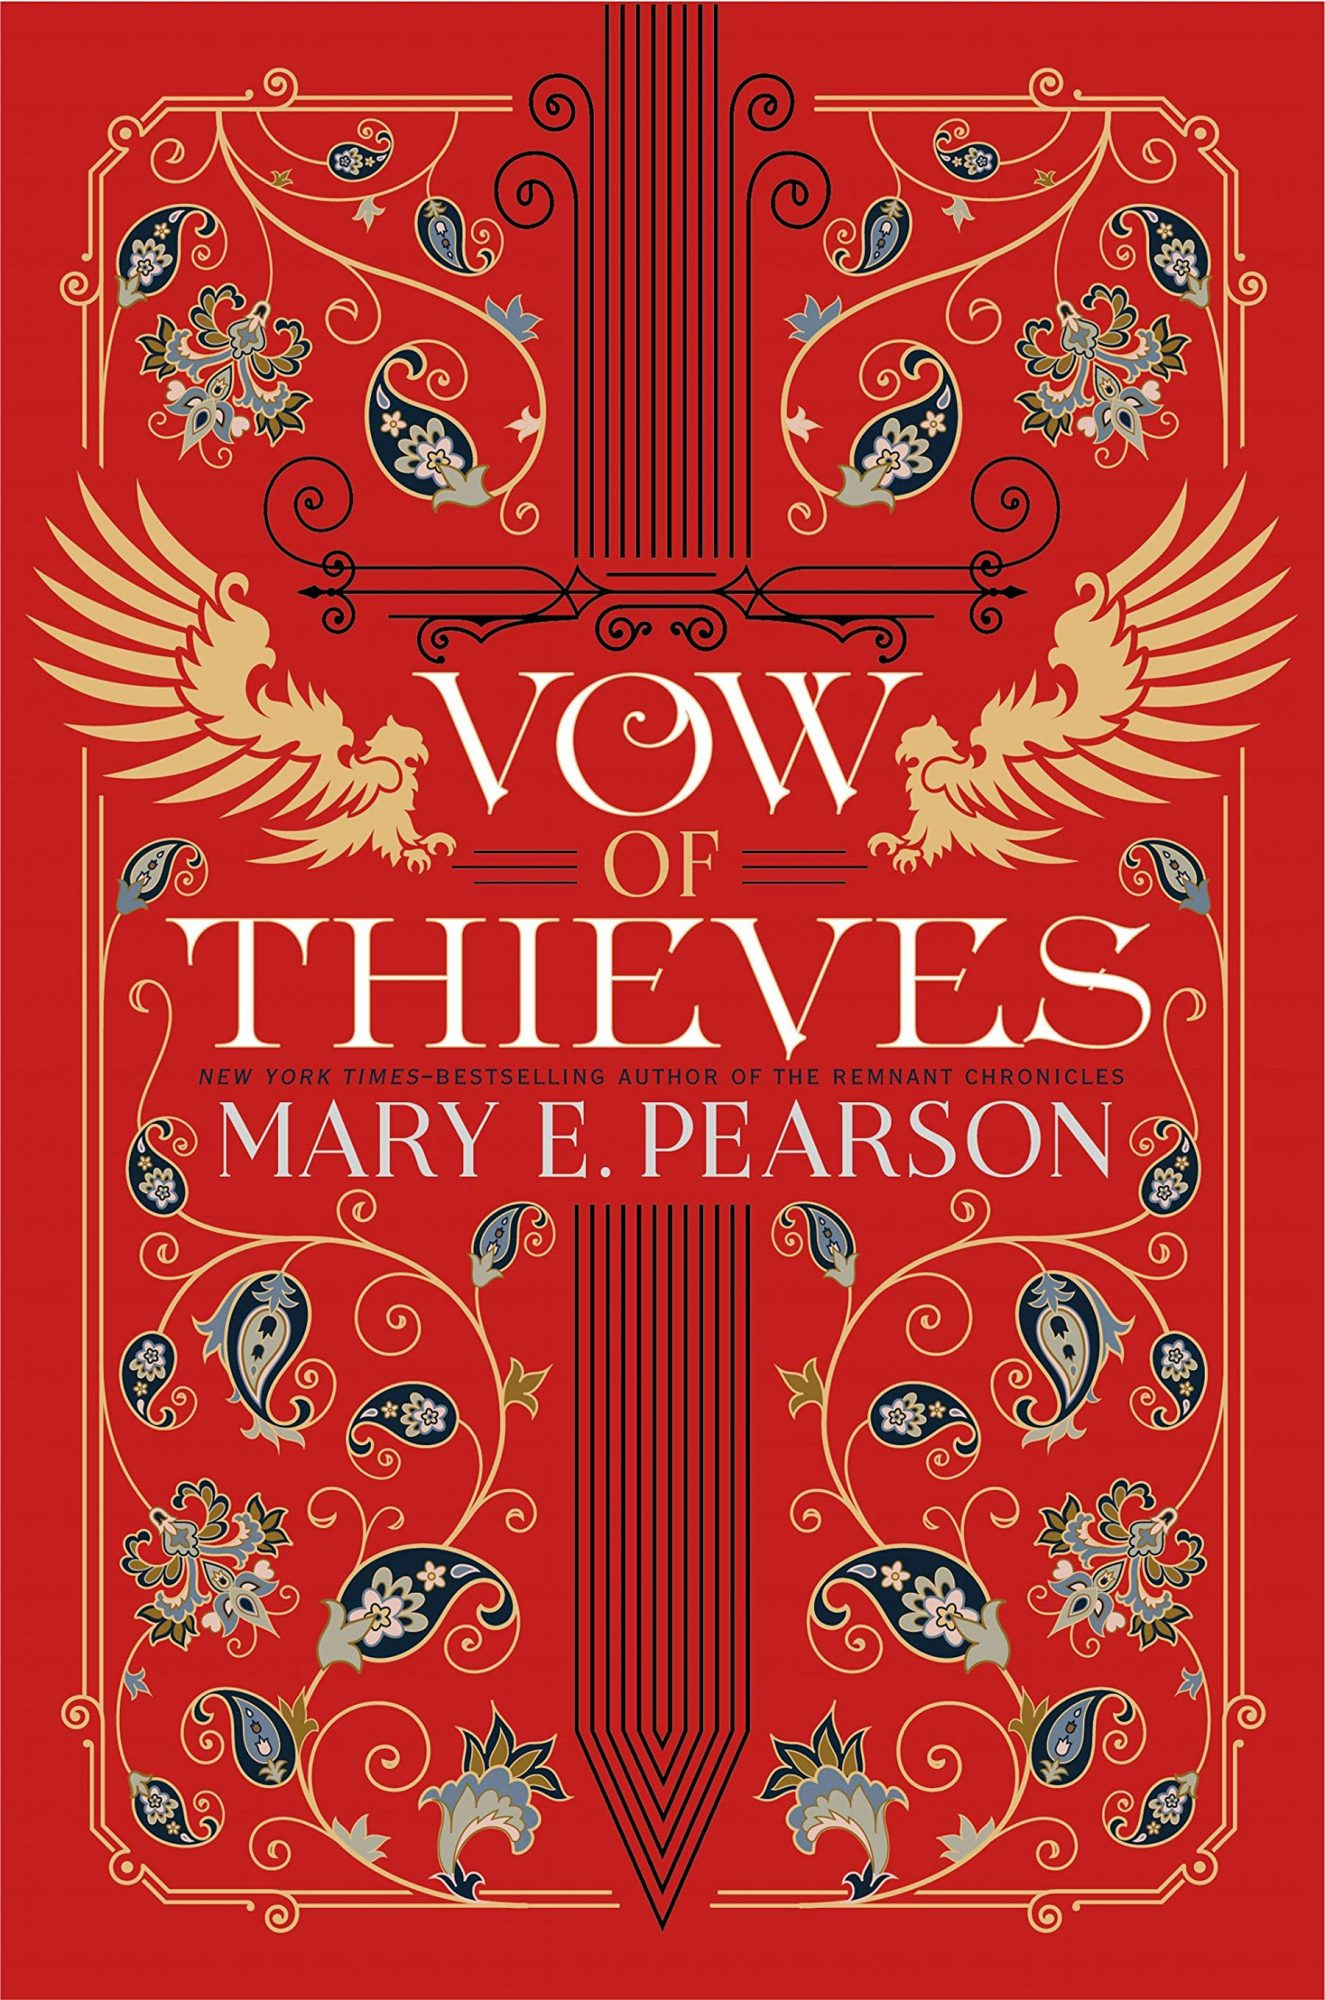 Vow of Thieves, by Mary E. Pearson